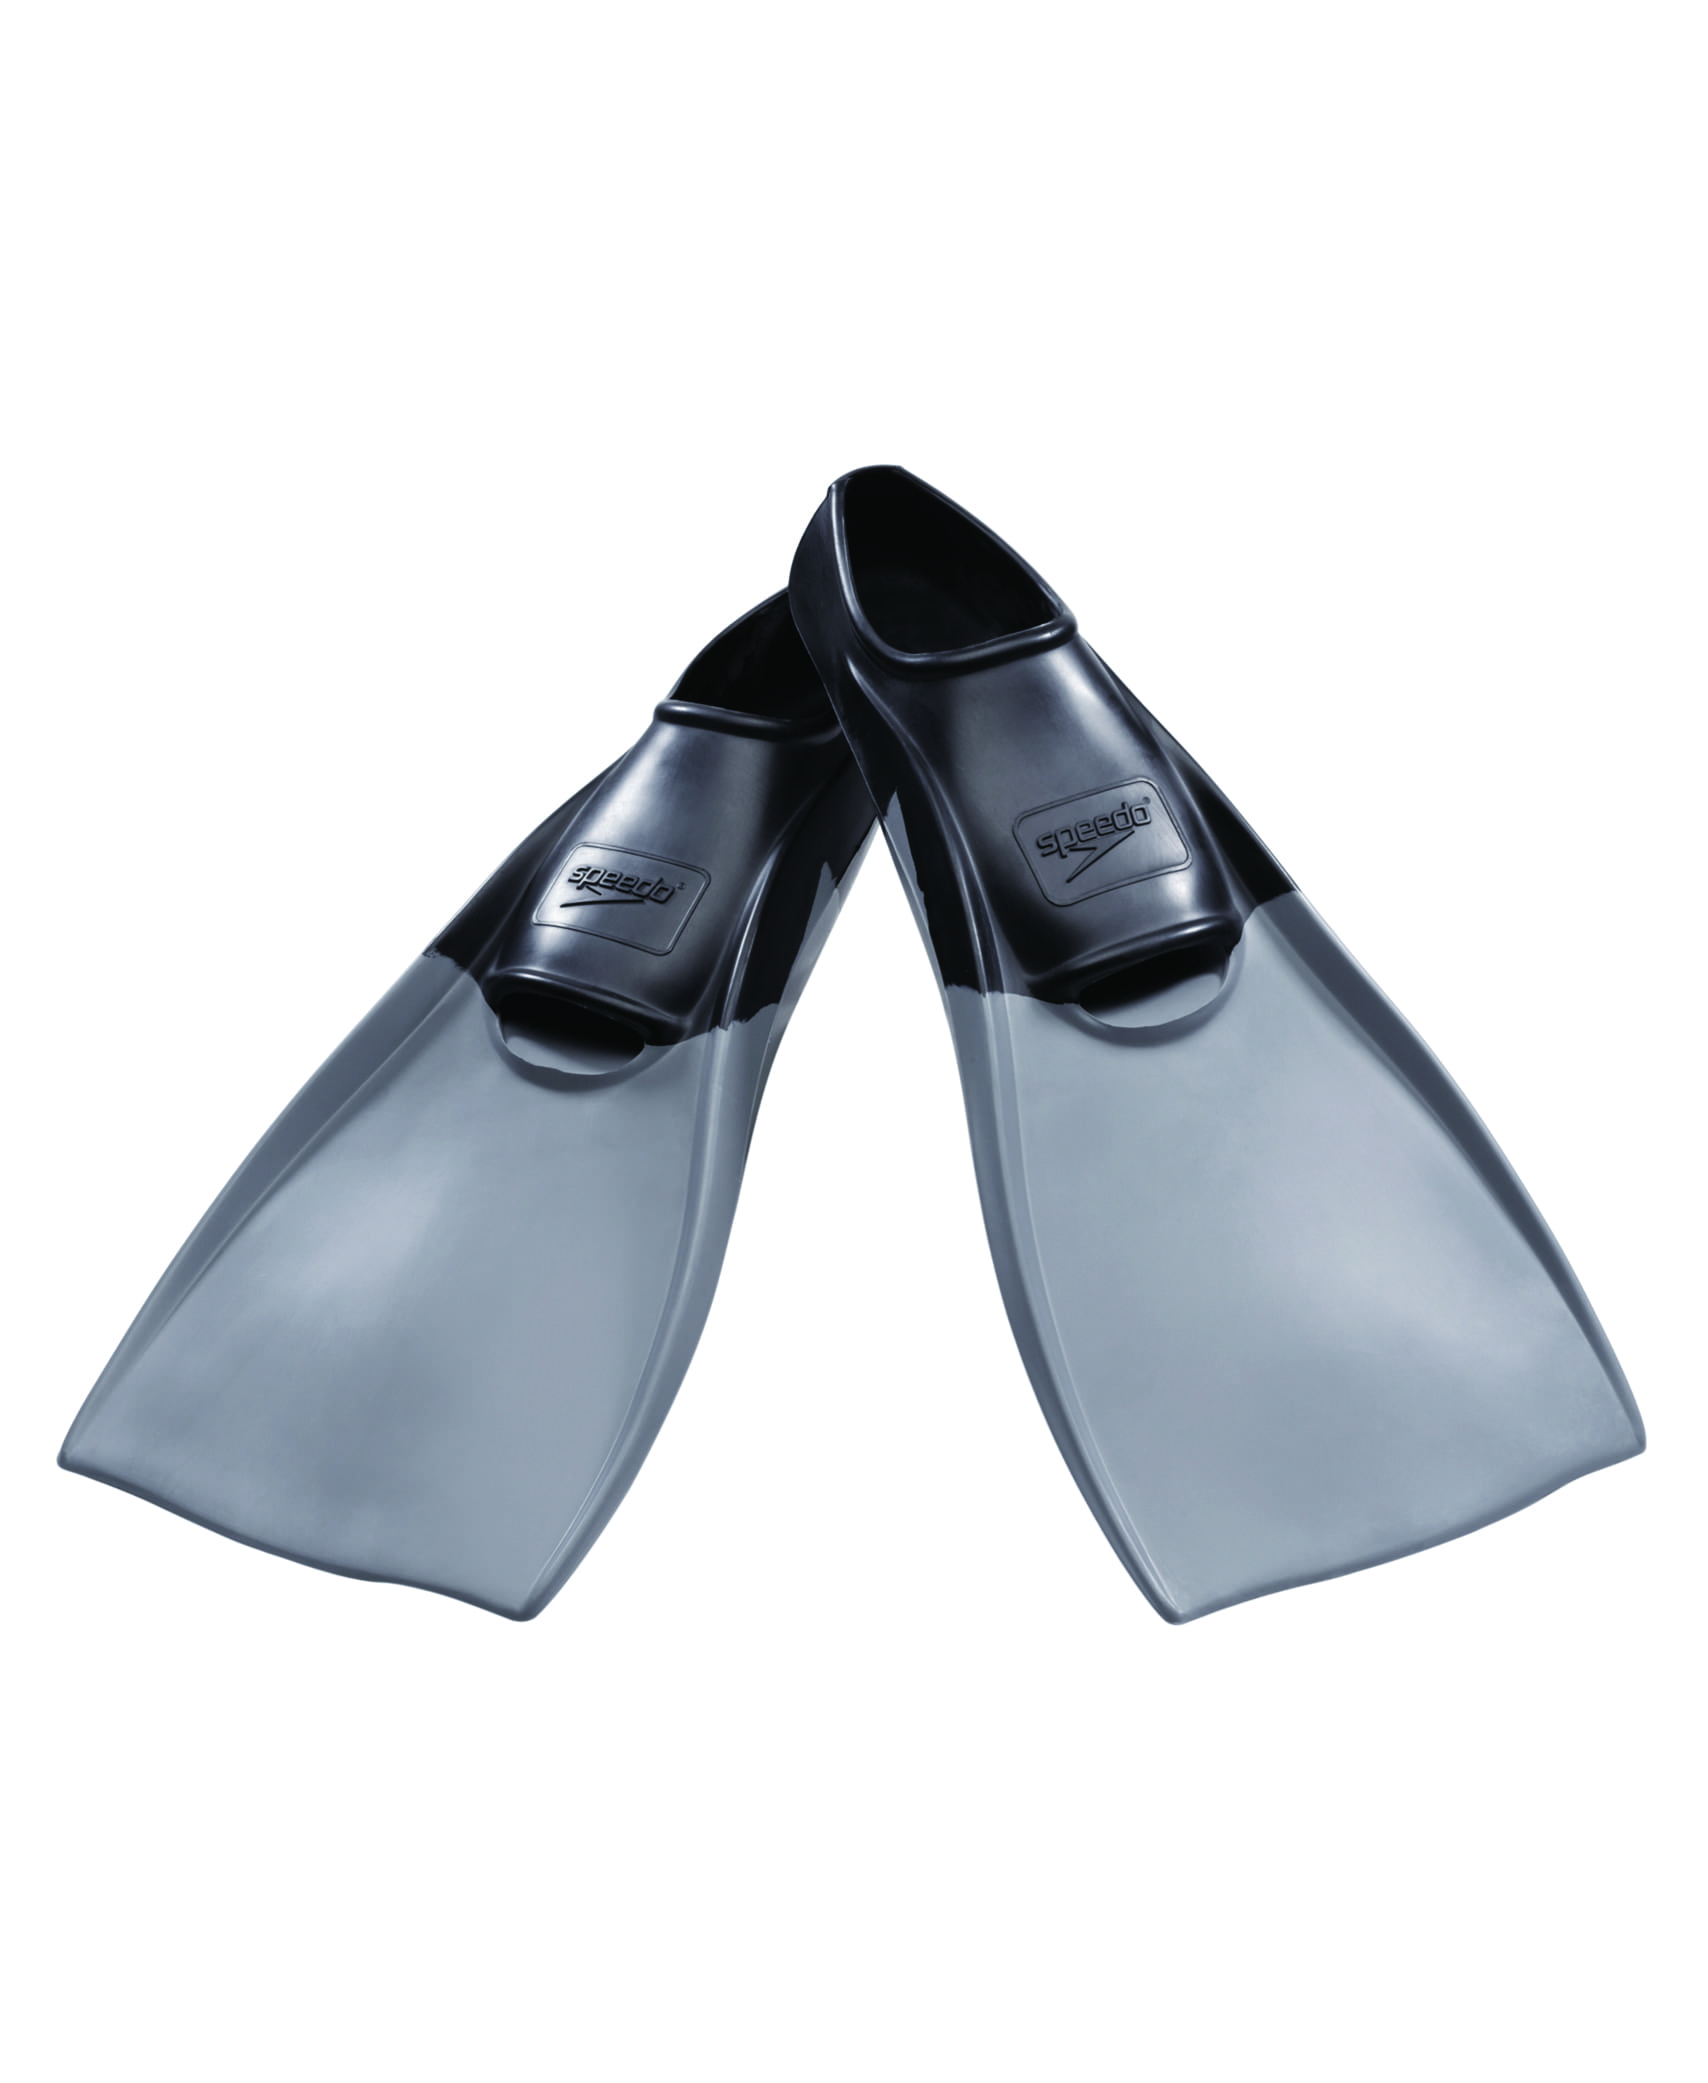 Speedo Trialon Swim Fins- Black 34.99